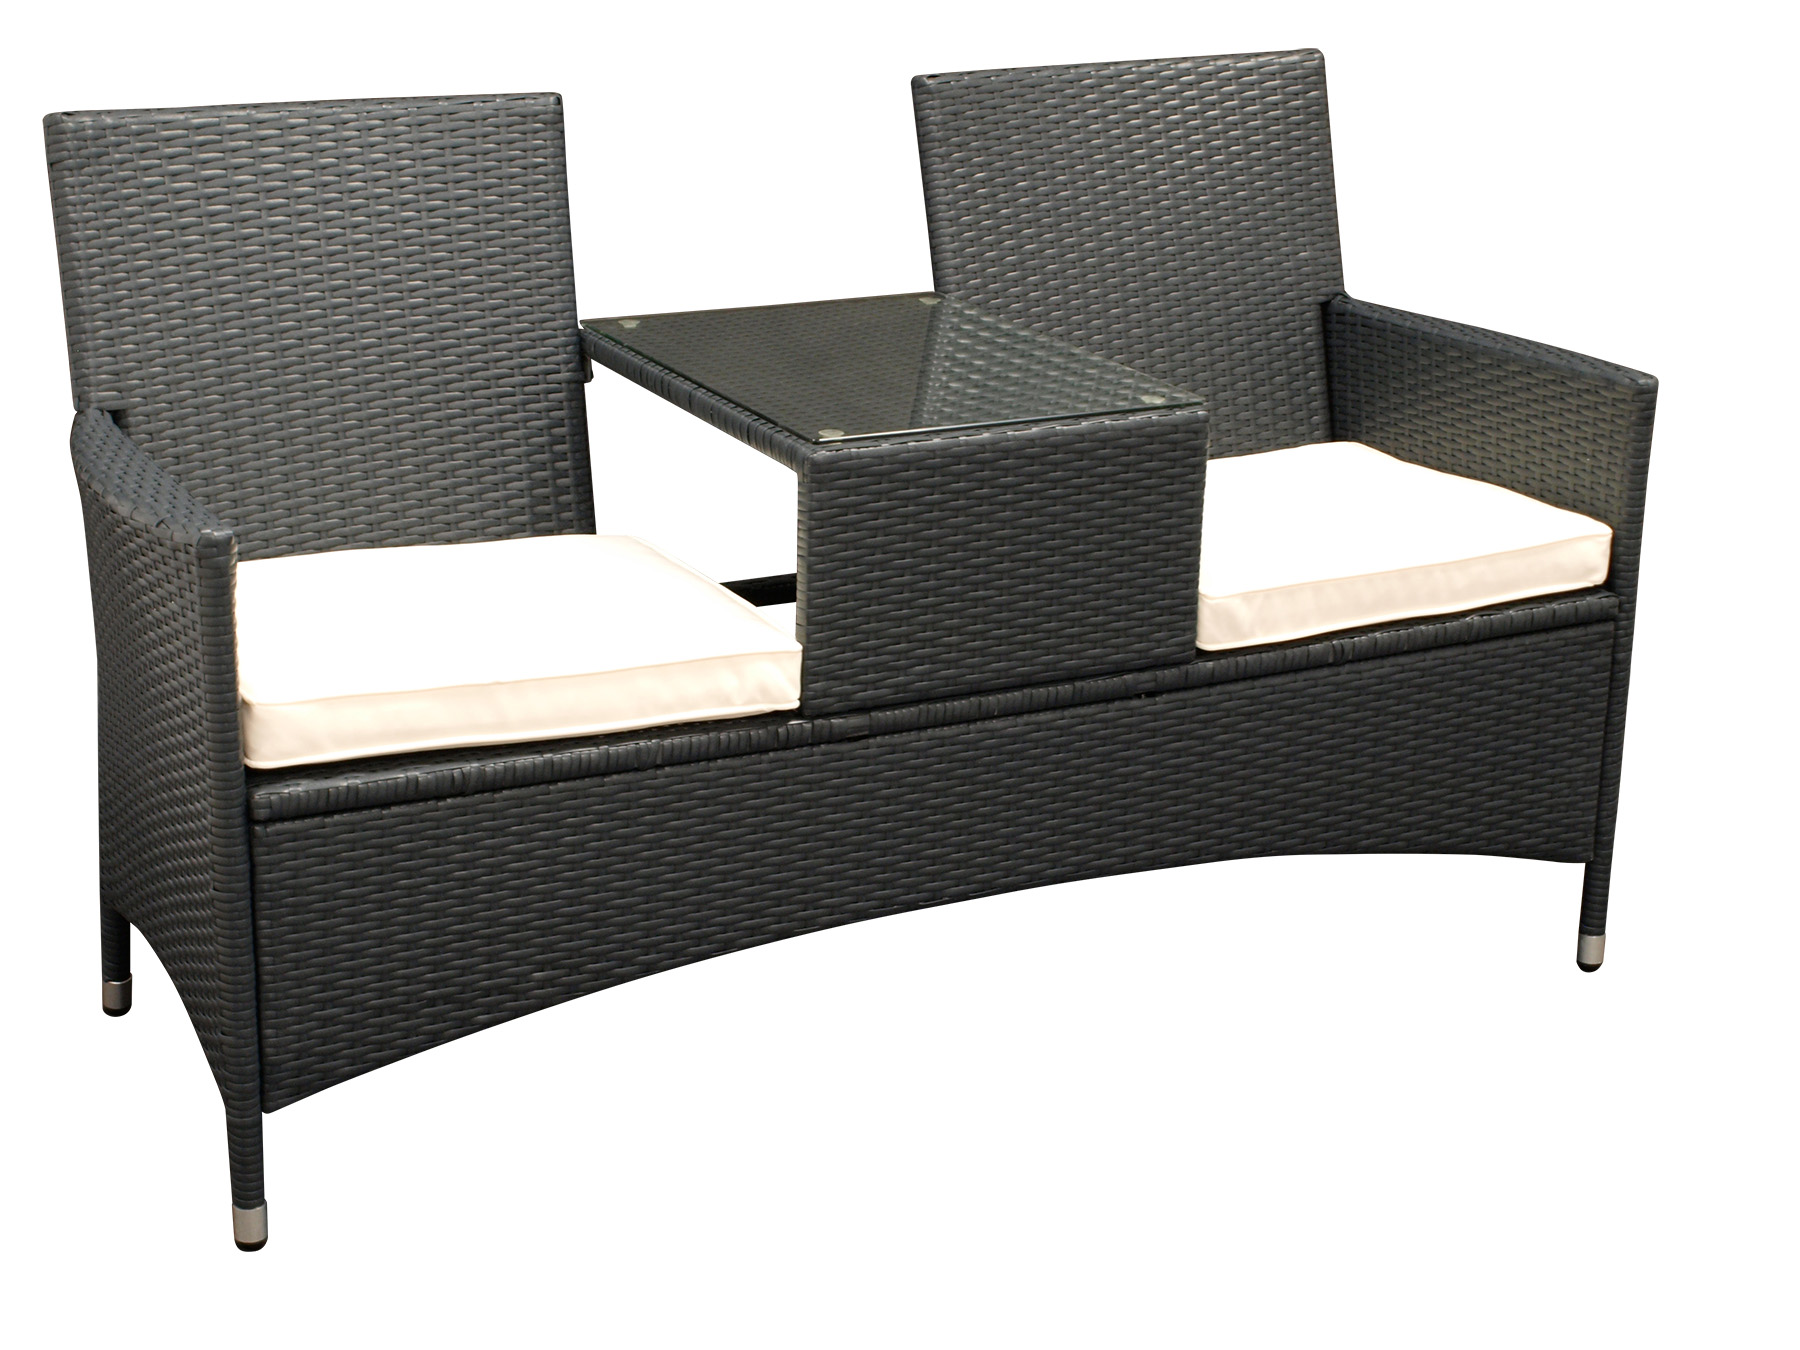 gartenbank mit tisch rattan 173934 eine interessante idee f r die gestaltung. Black Bedroom Furniture Sets. Home Design Ideas